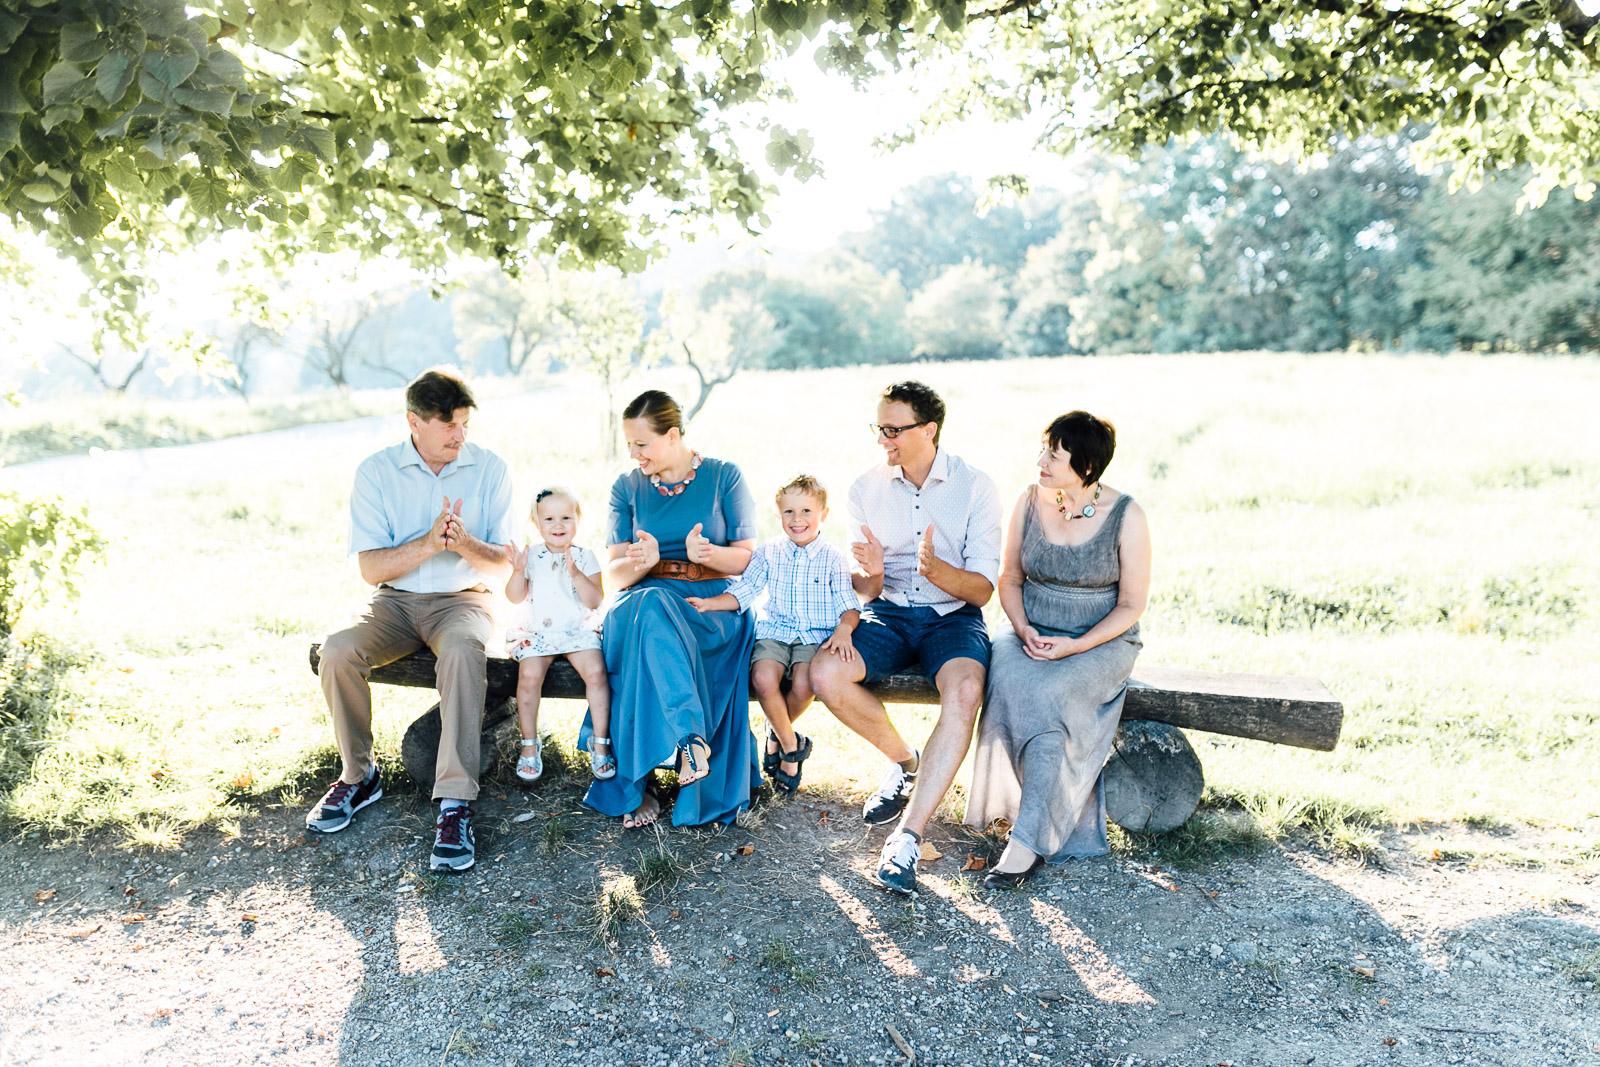 Familysession outdoor